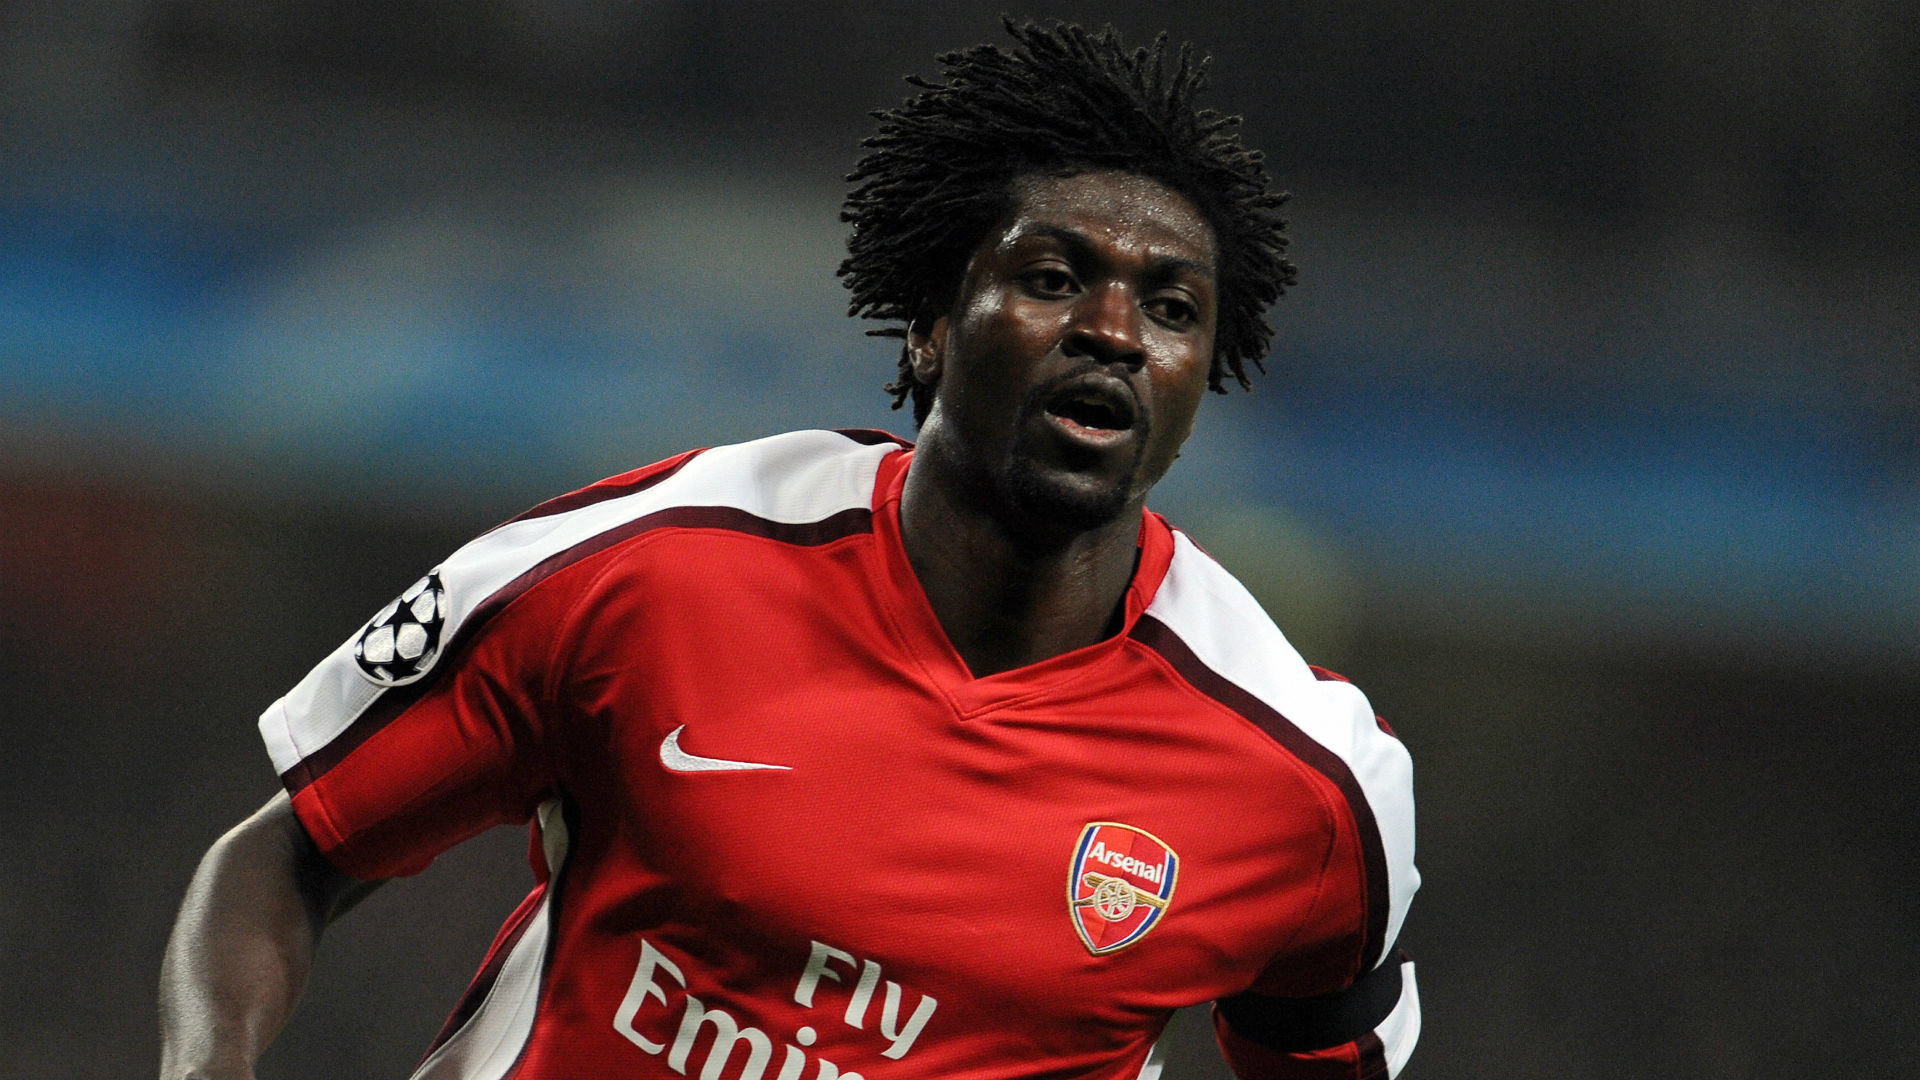 Emmanuel Adebayor Arsenal